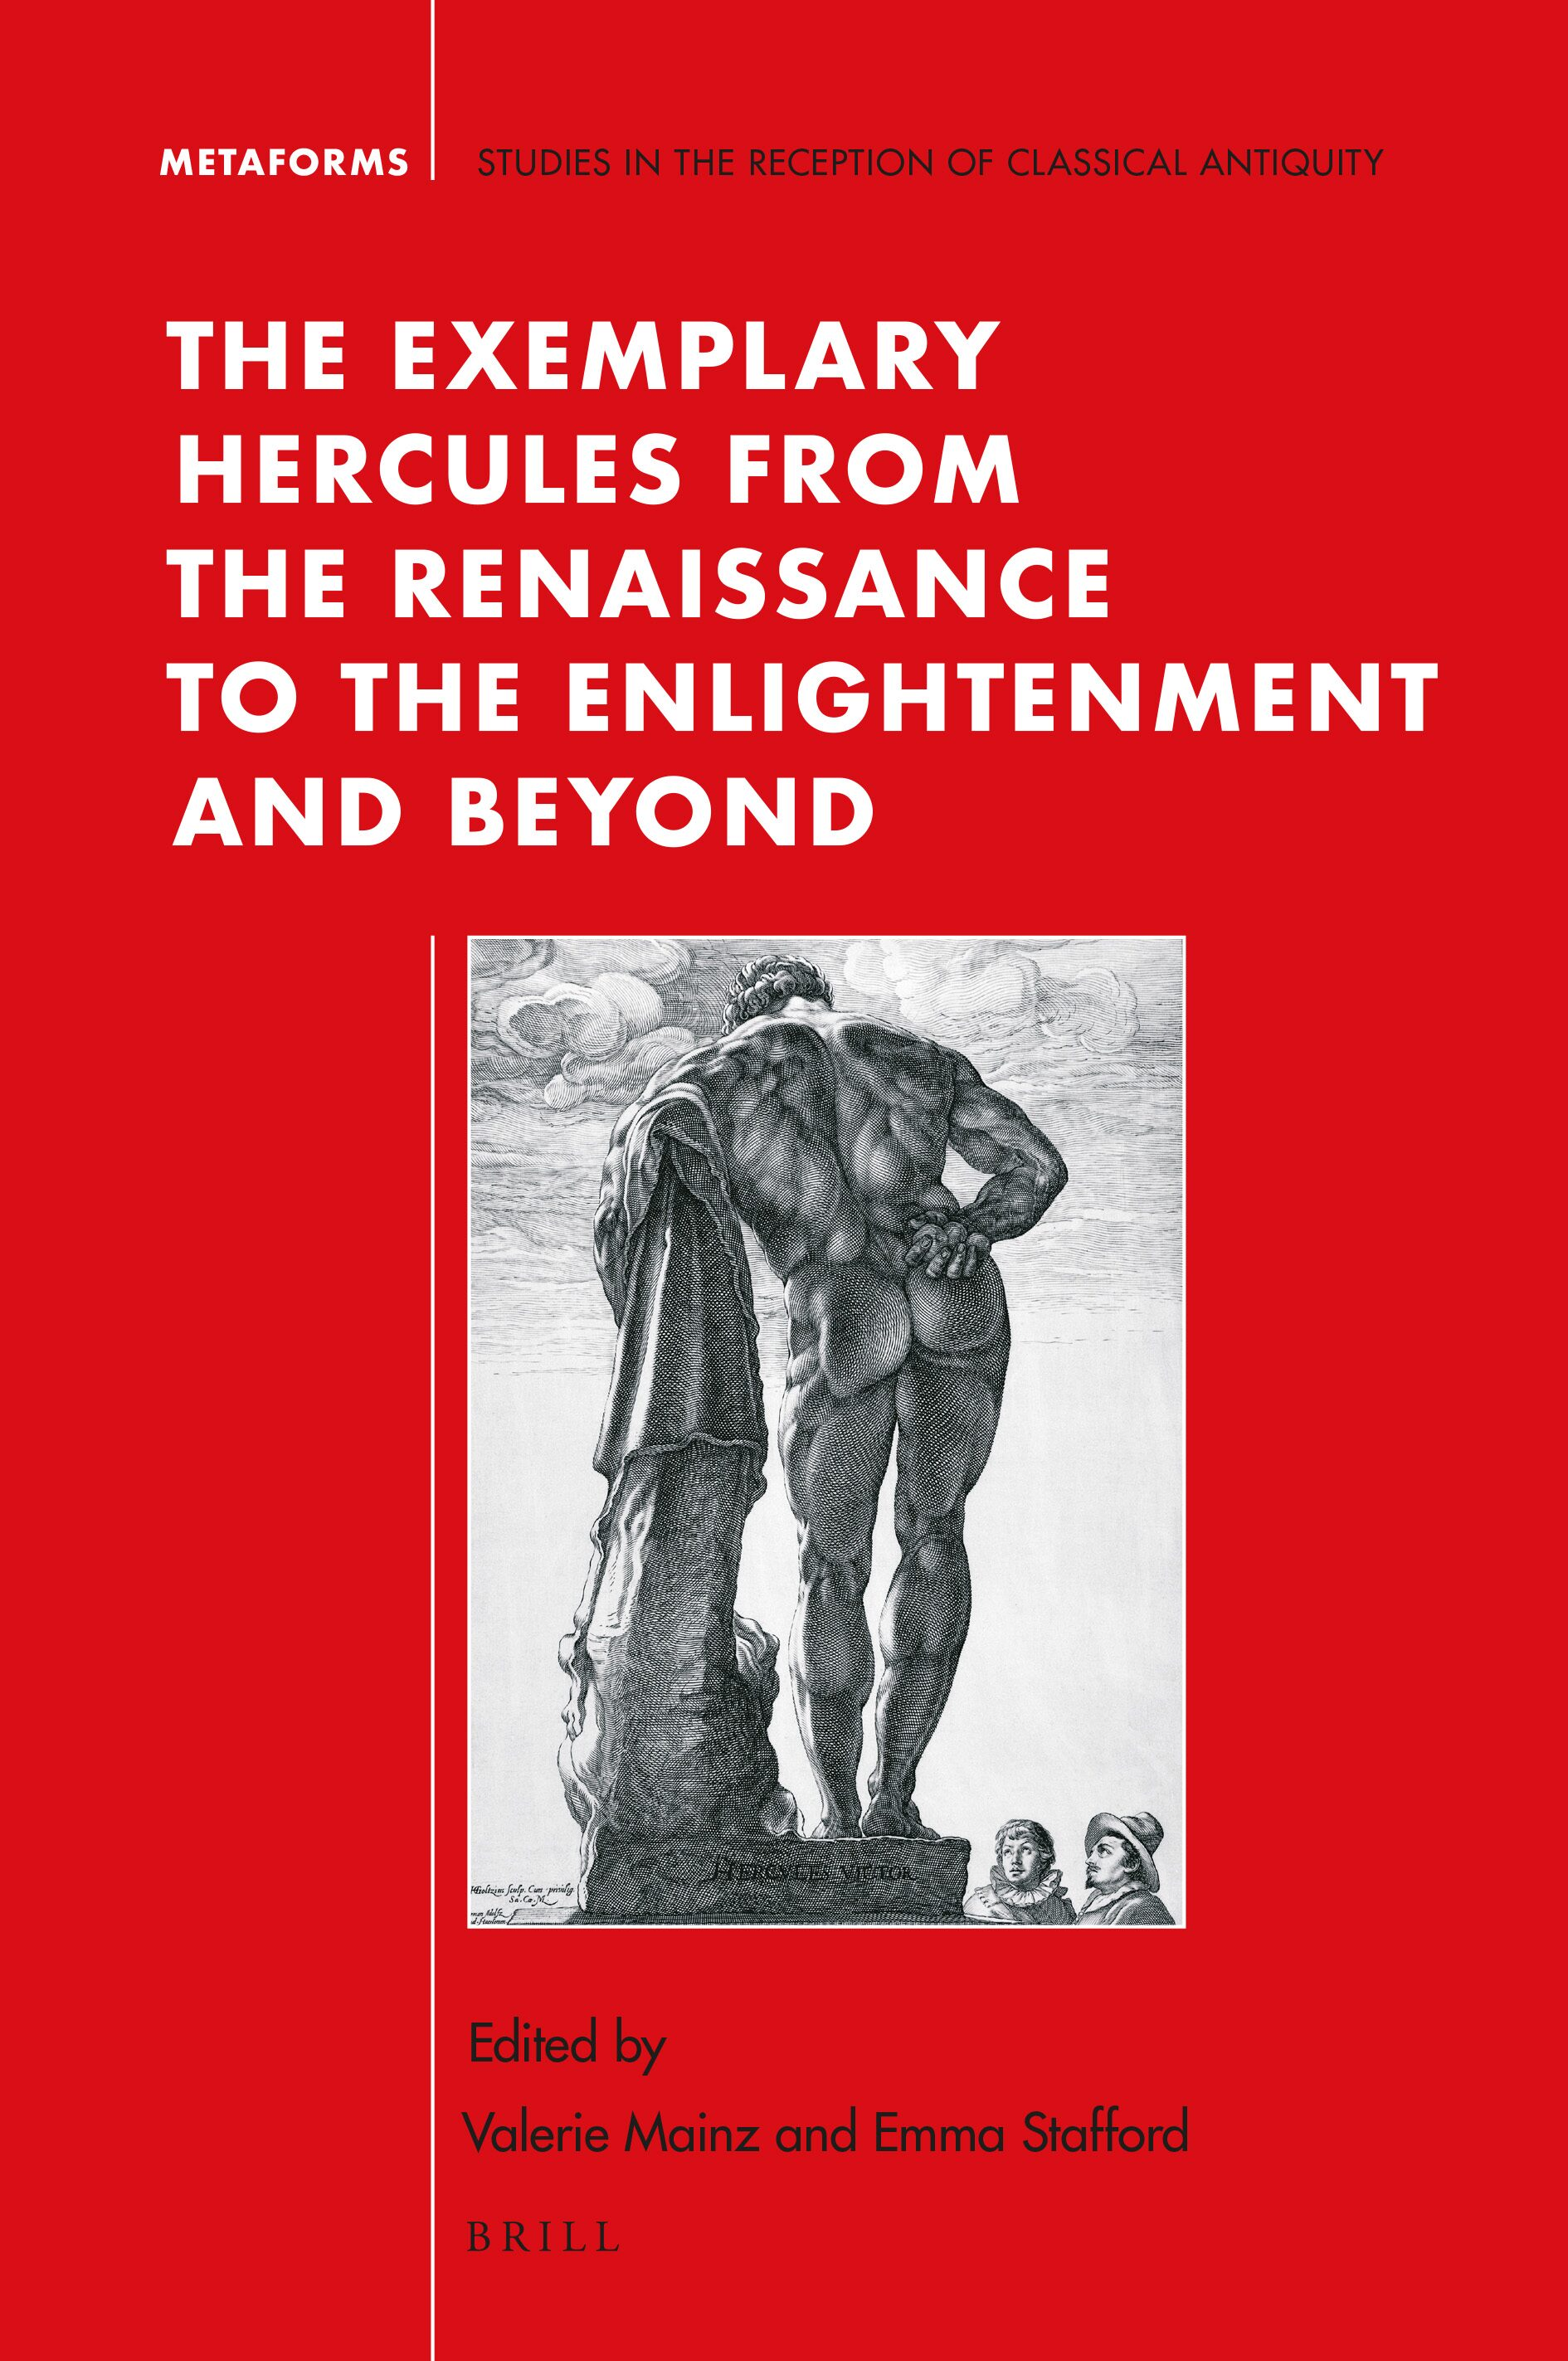 Chapter 11 Hercules His Club And The French Revolution In The Exemplary Hercules From The Renaissance To The Enlightenment And Beyond